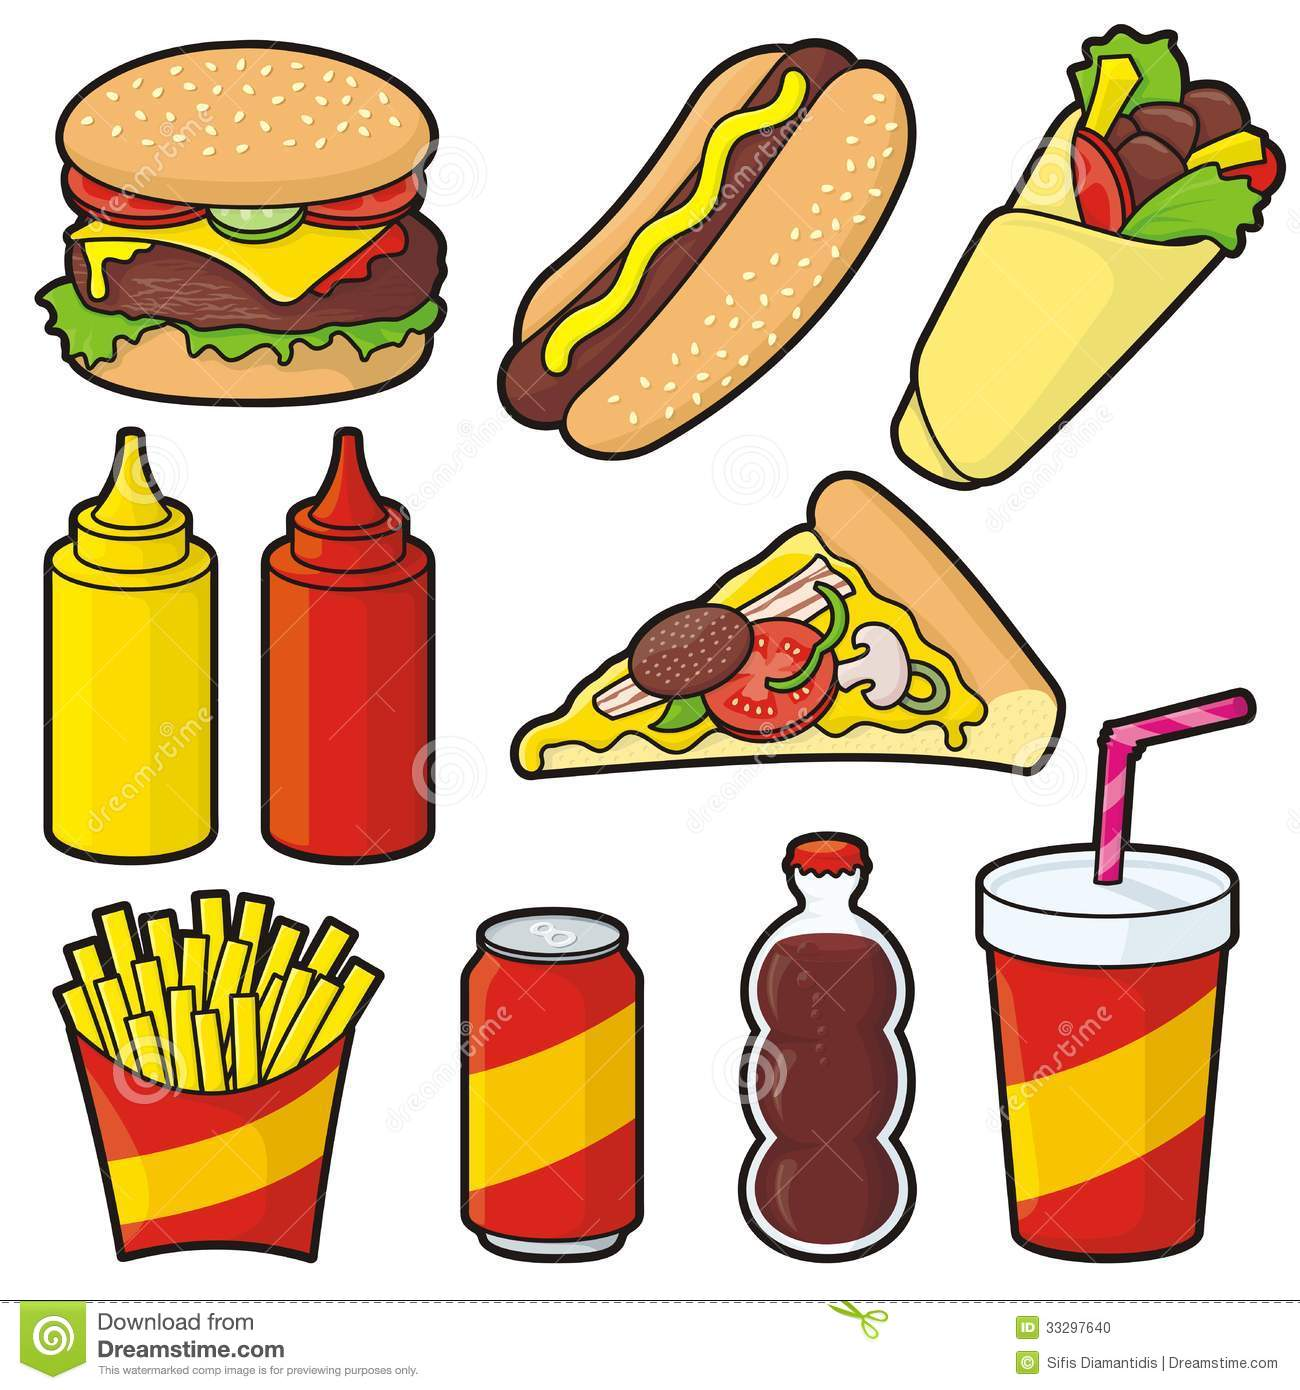 Healthy and junk food clipart.